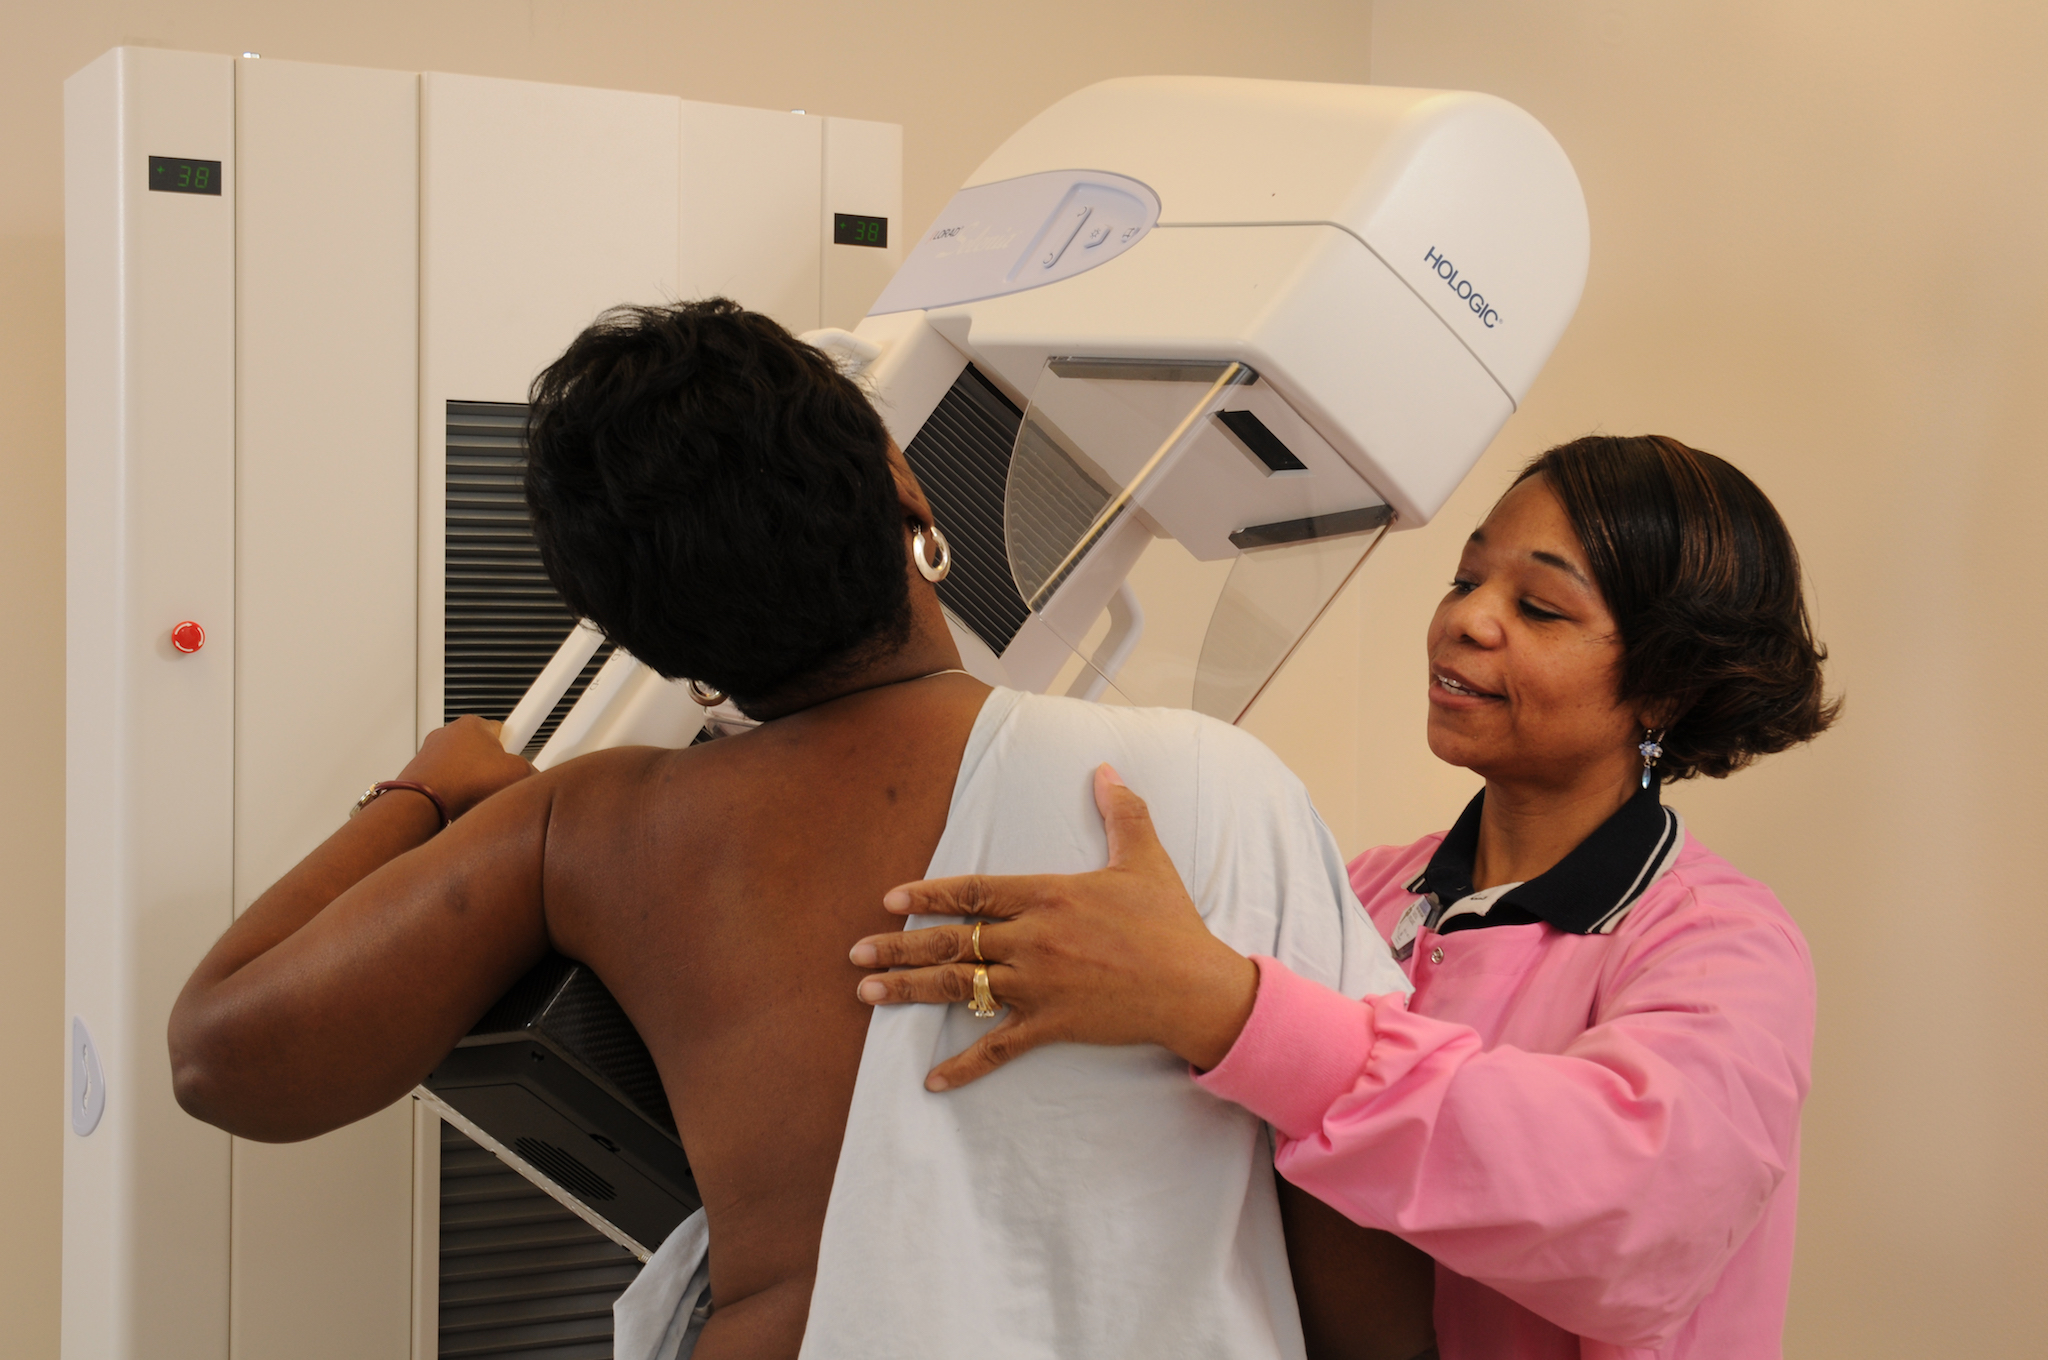 Image of mammorgraphy patient at mammogram machine with technician.